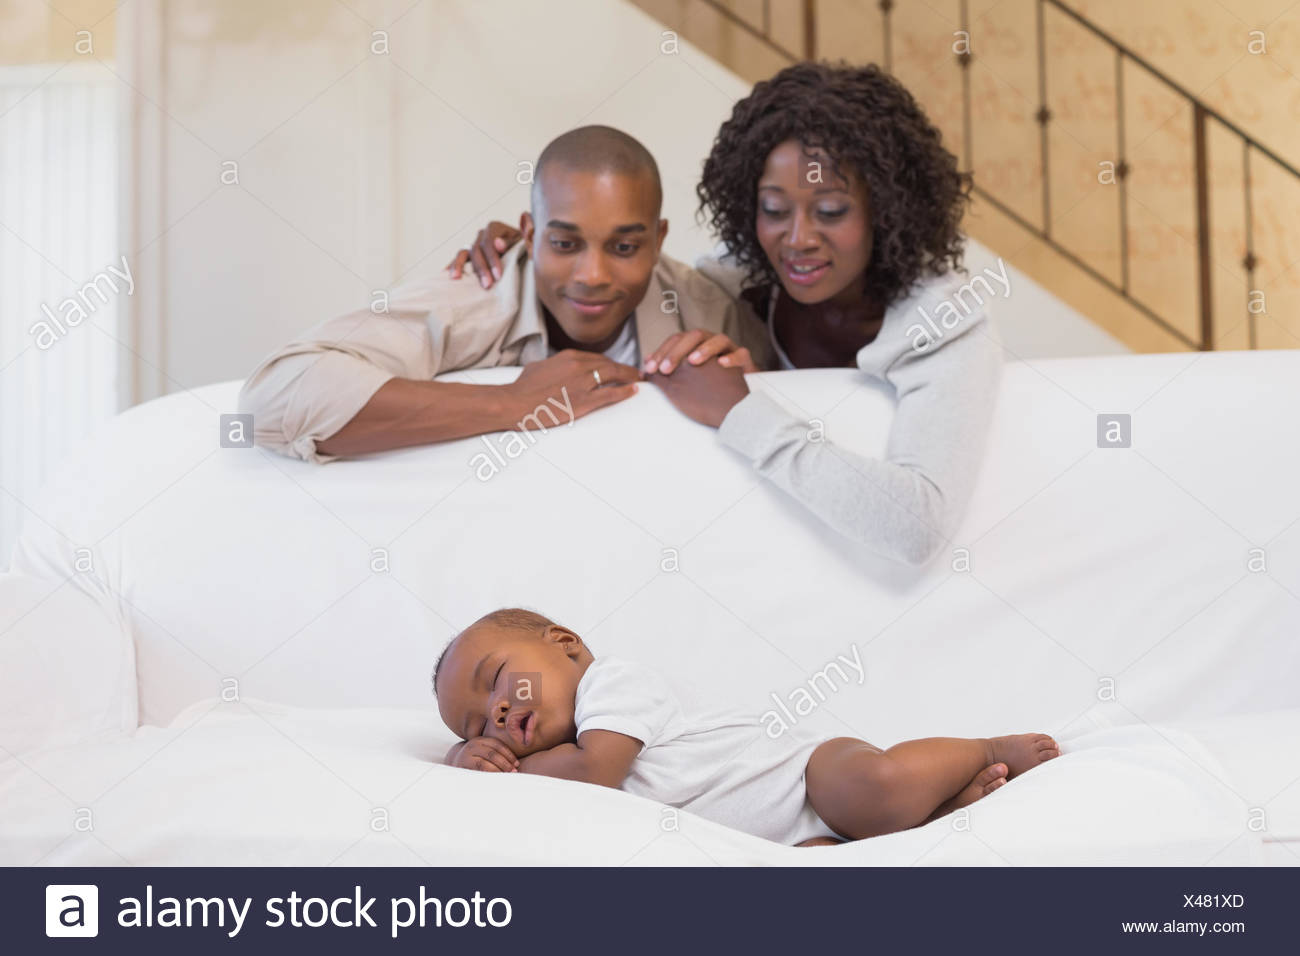 Adorable baby boy sleeping while being watched by parents - Stock Image